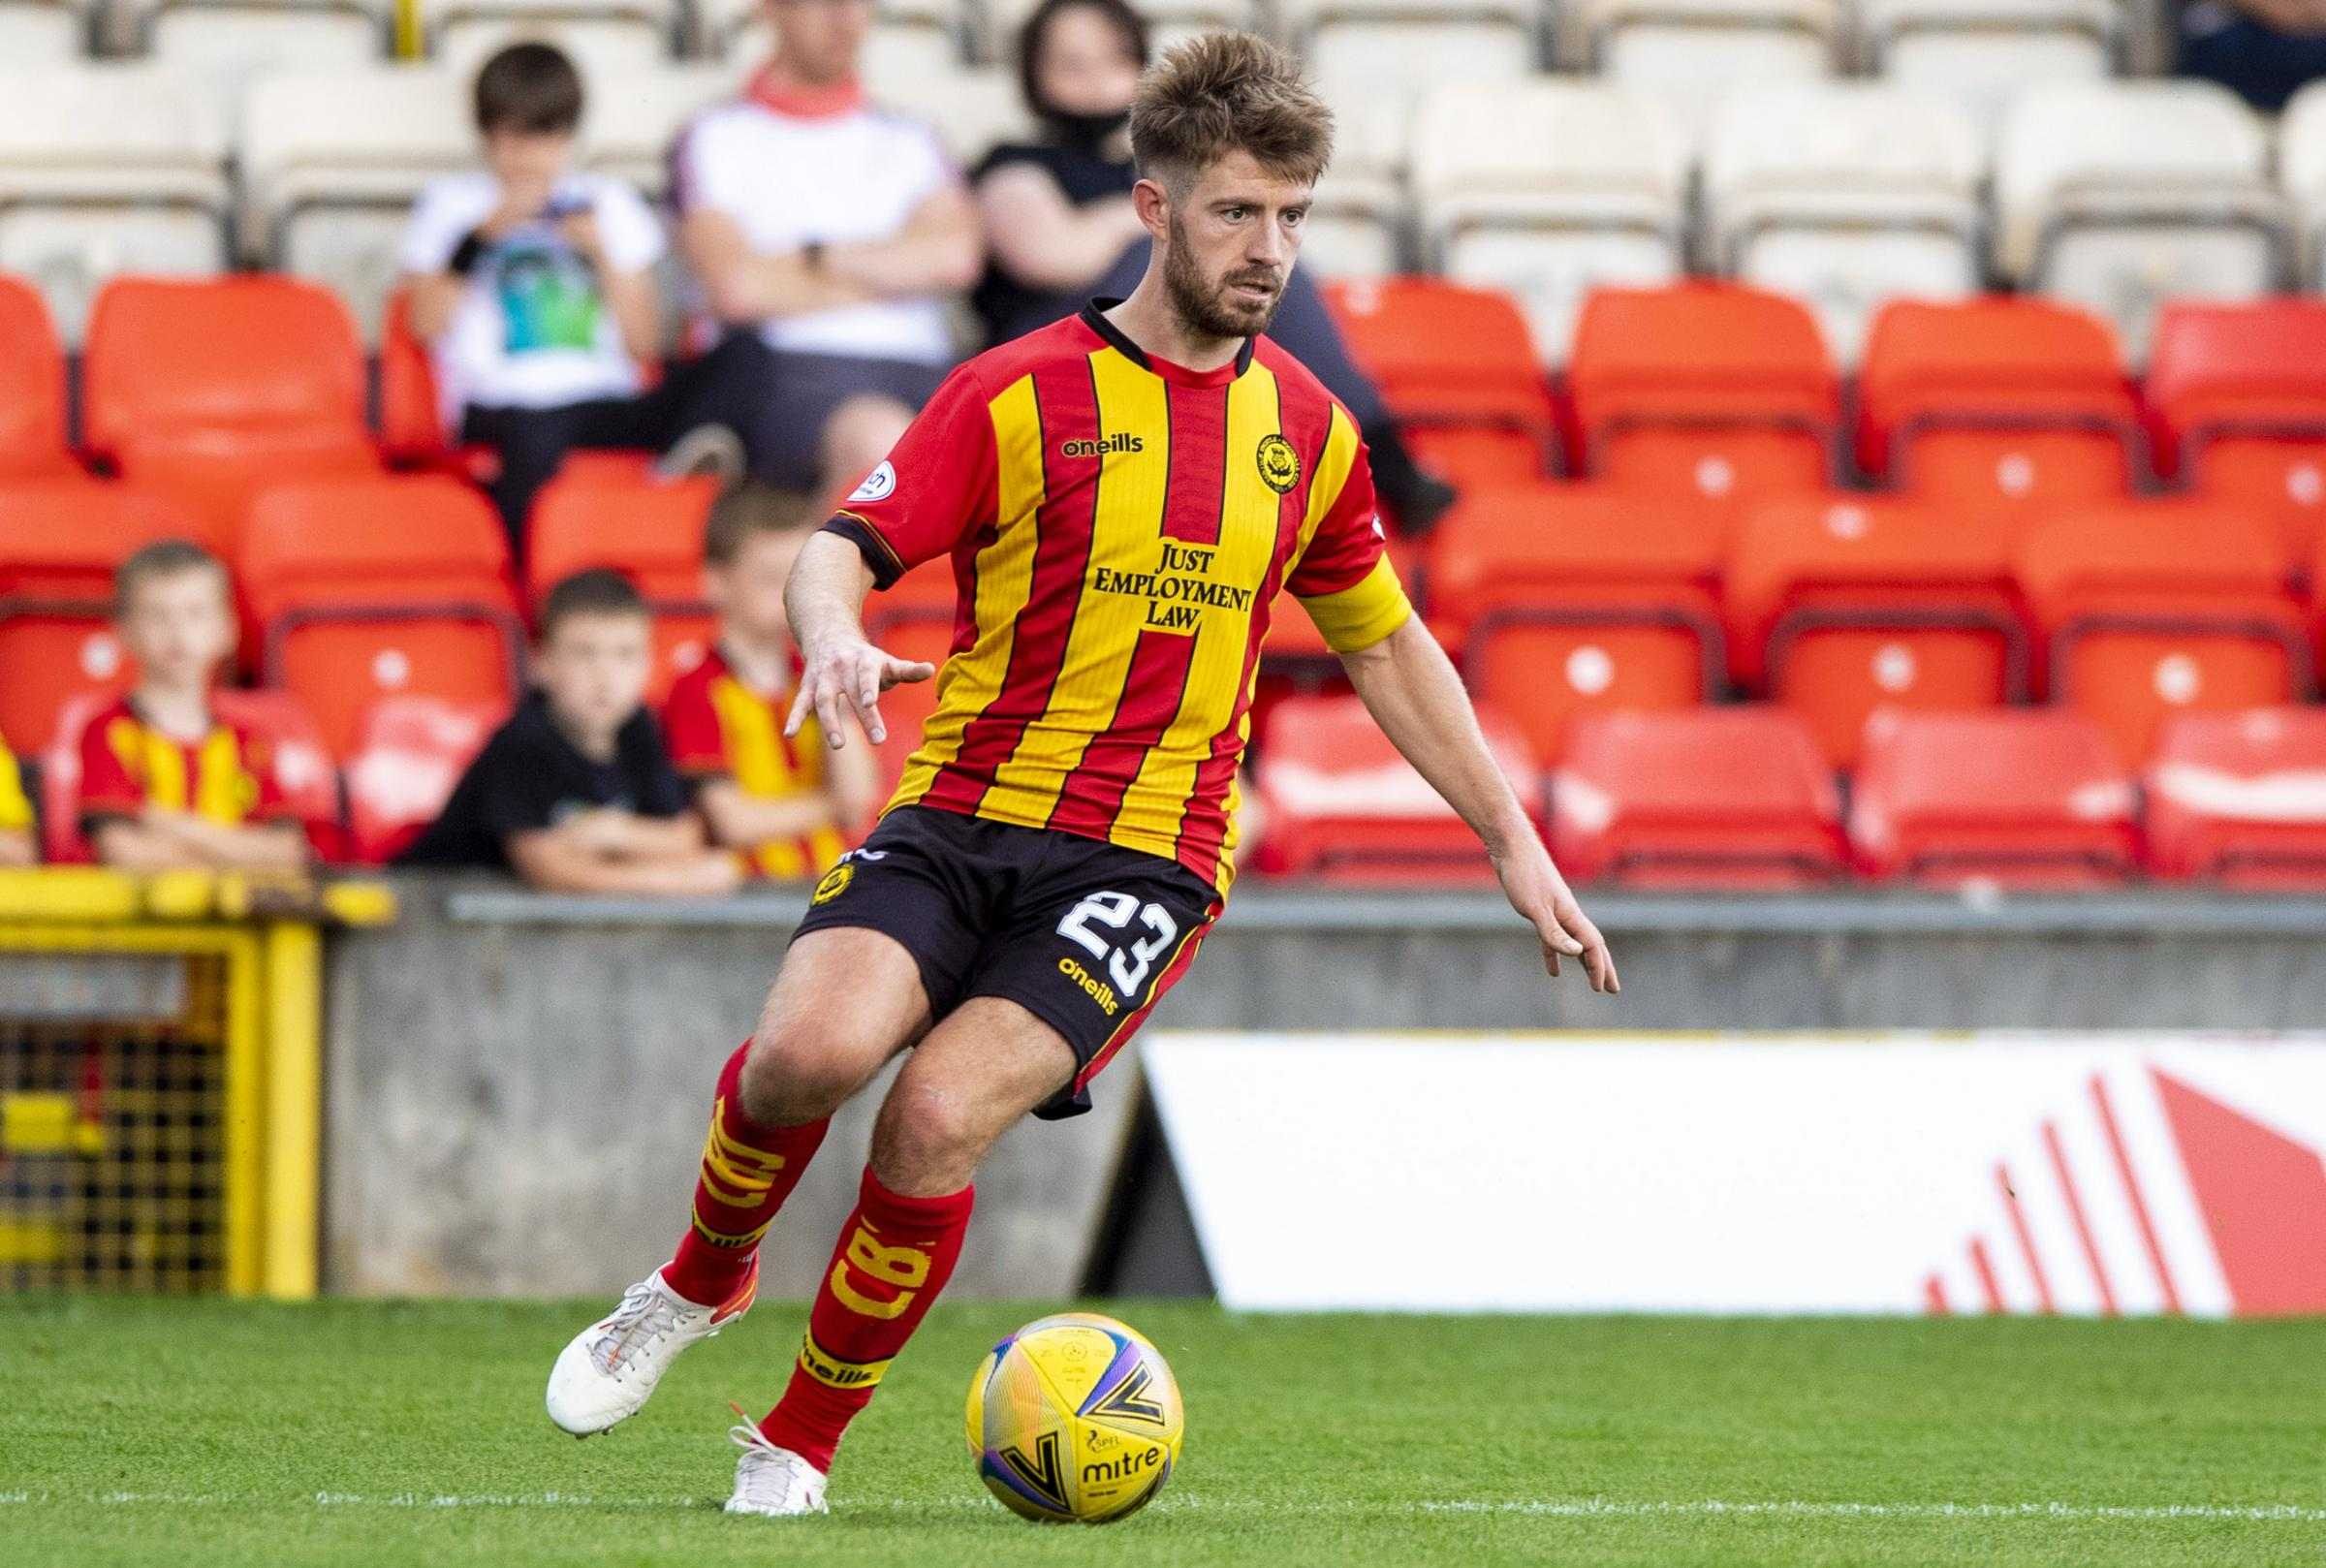 Ross Docherty sees progress at Thistle despite goalless draw with Dunfermline